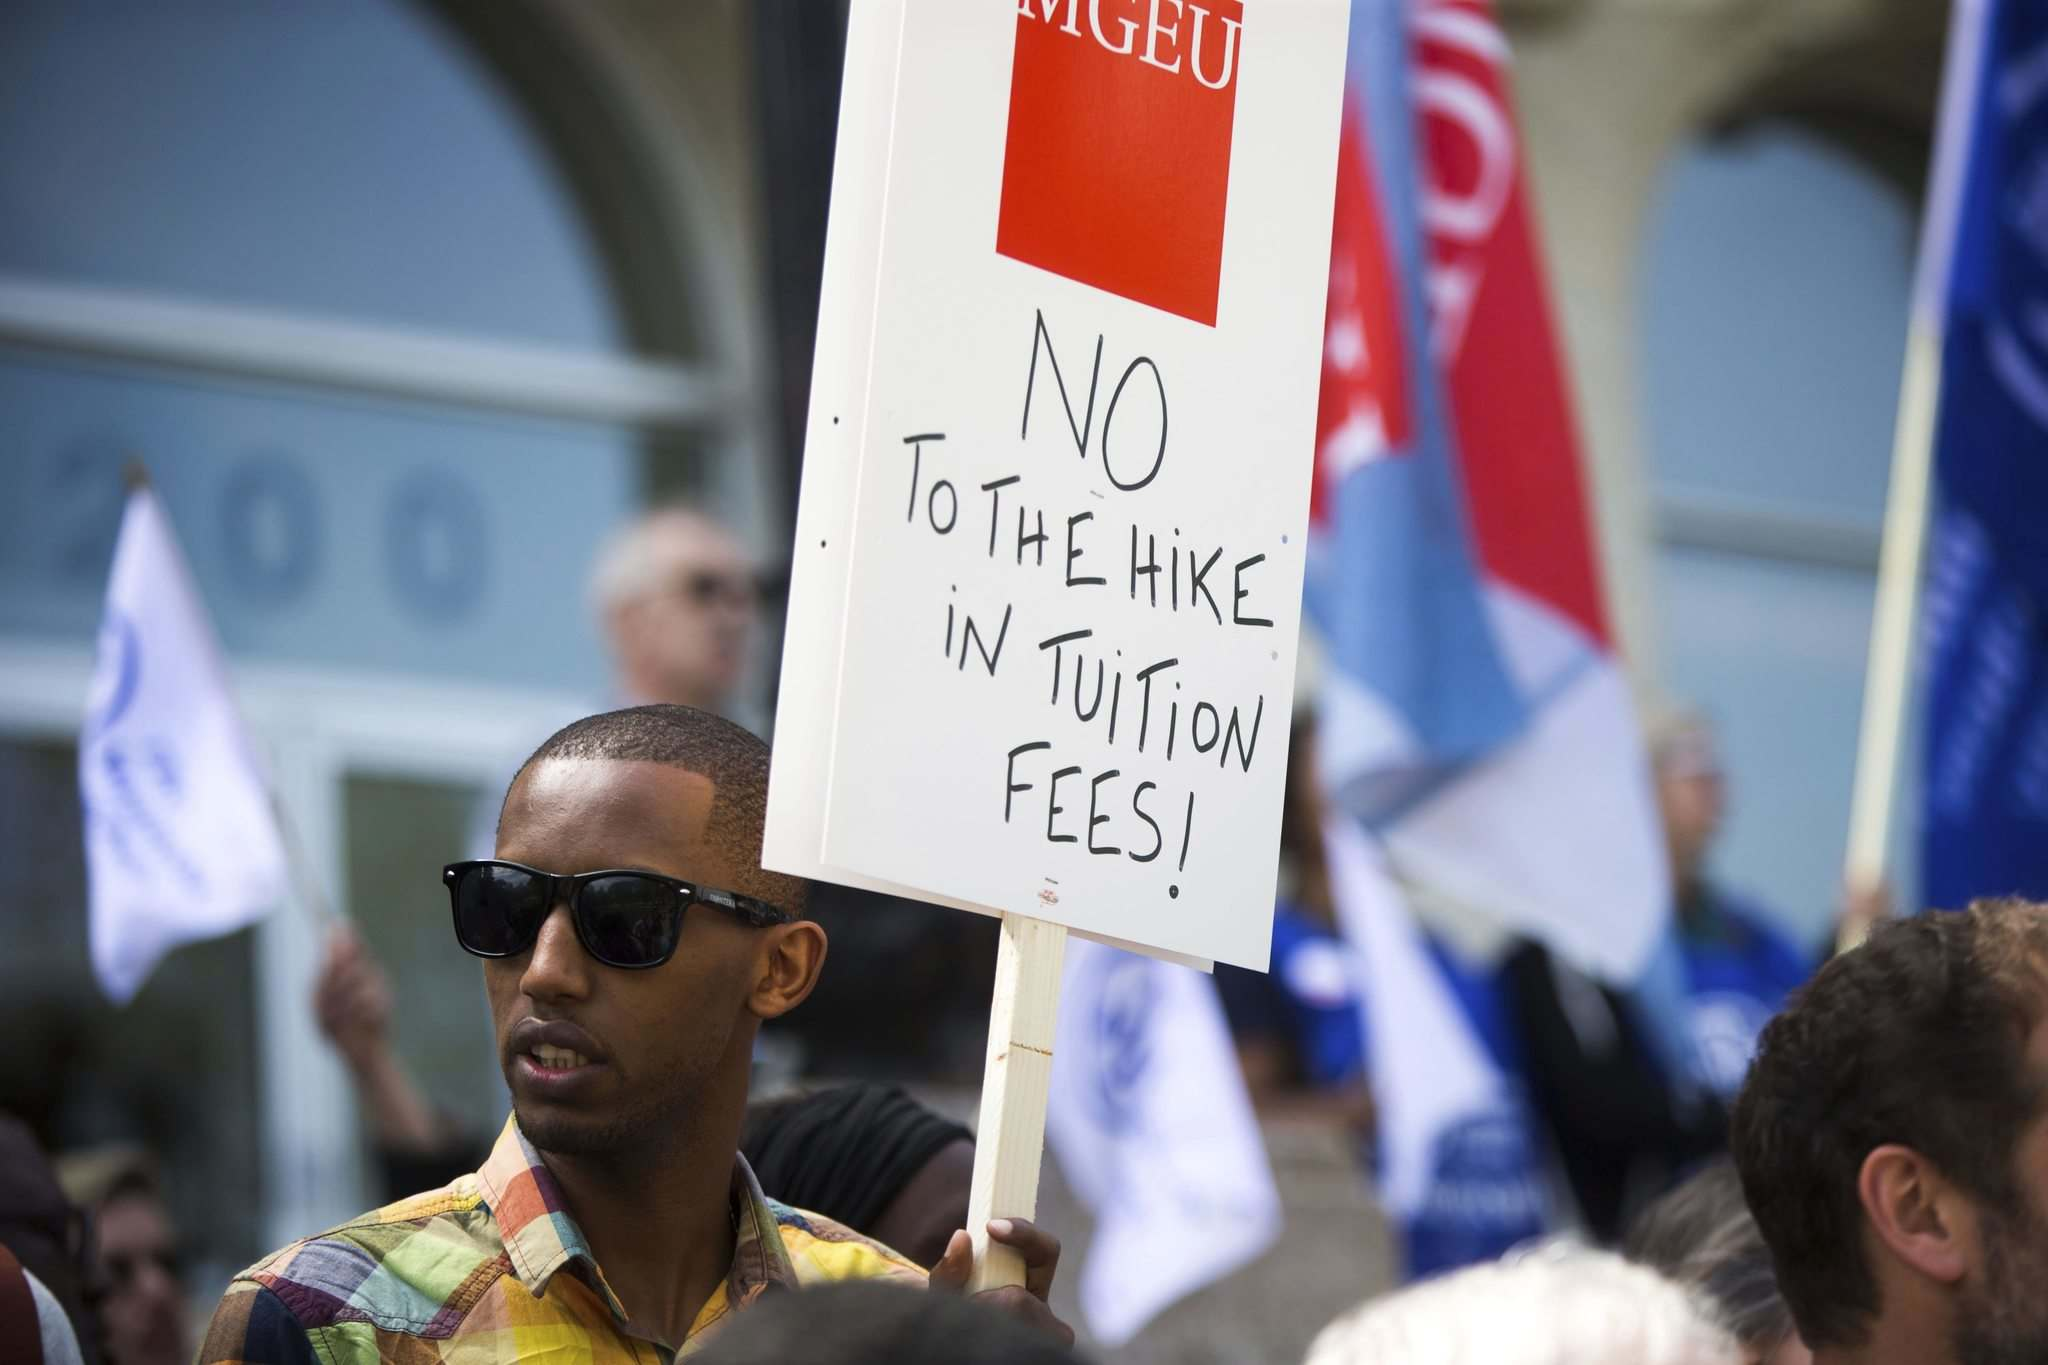 MIKAELA MACKENZIE / WINNIPEG FREE PRESS</p><p>Mikaela MacKenzie / Winnipeg Free Press</p><p>Students and faculty rally against tuition-fee hikes and budget cuts at Universit&#233; de Saint-Boniface on Thursday.</p>